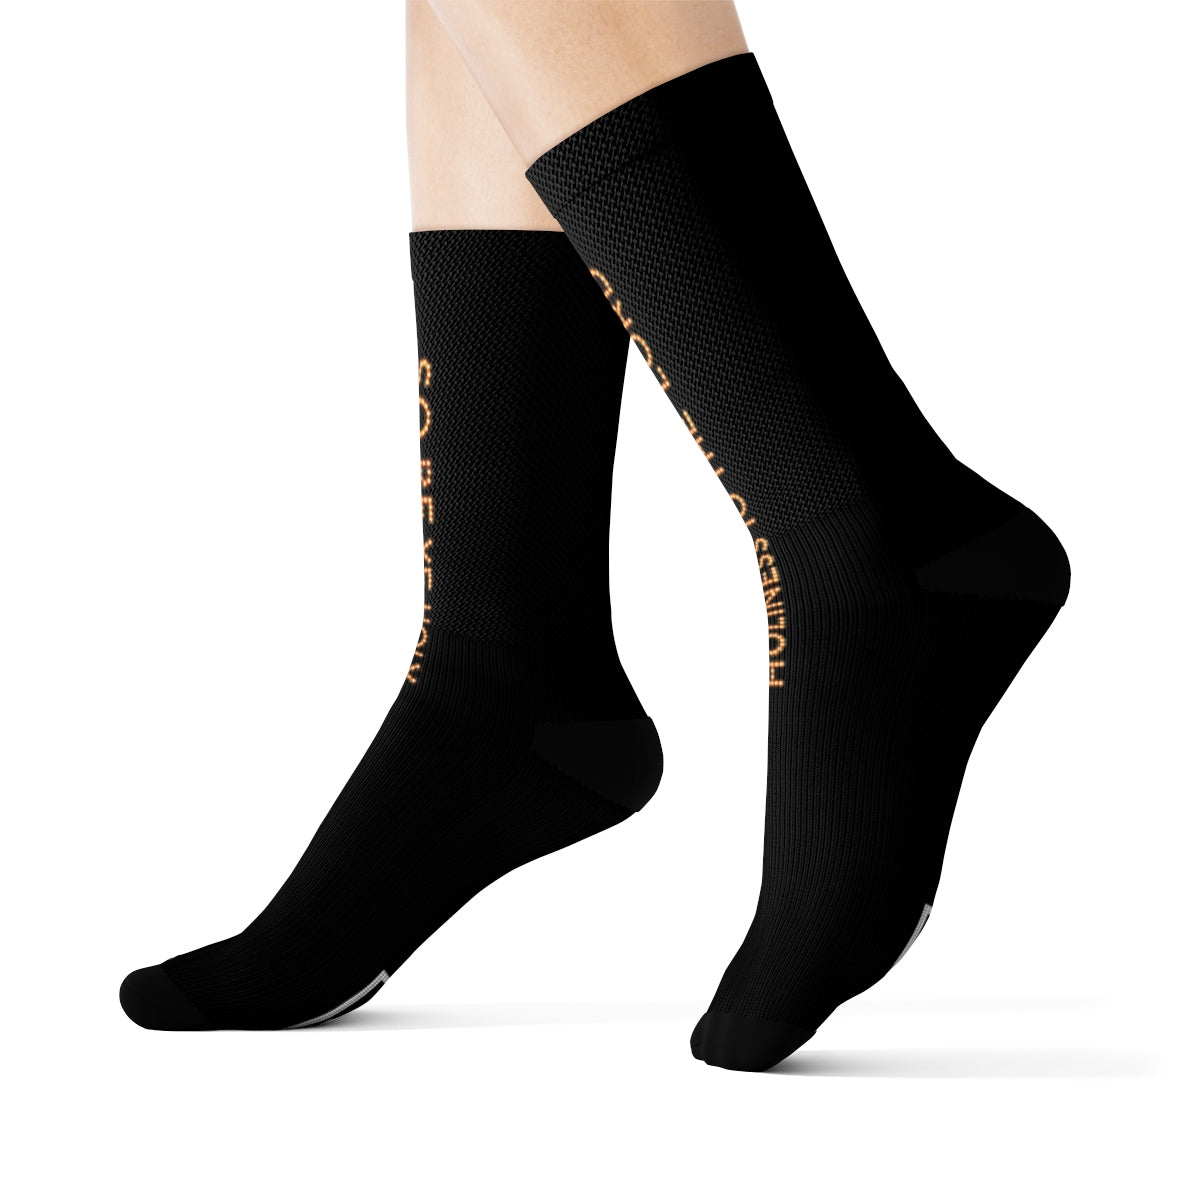 Auditorium Socks - GoGannon Designs